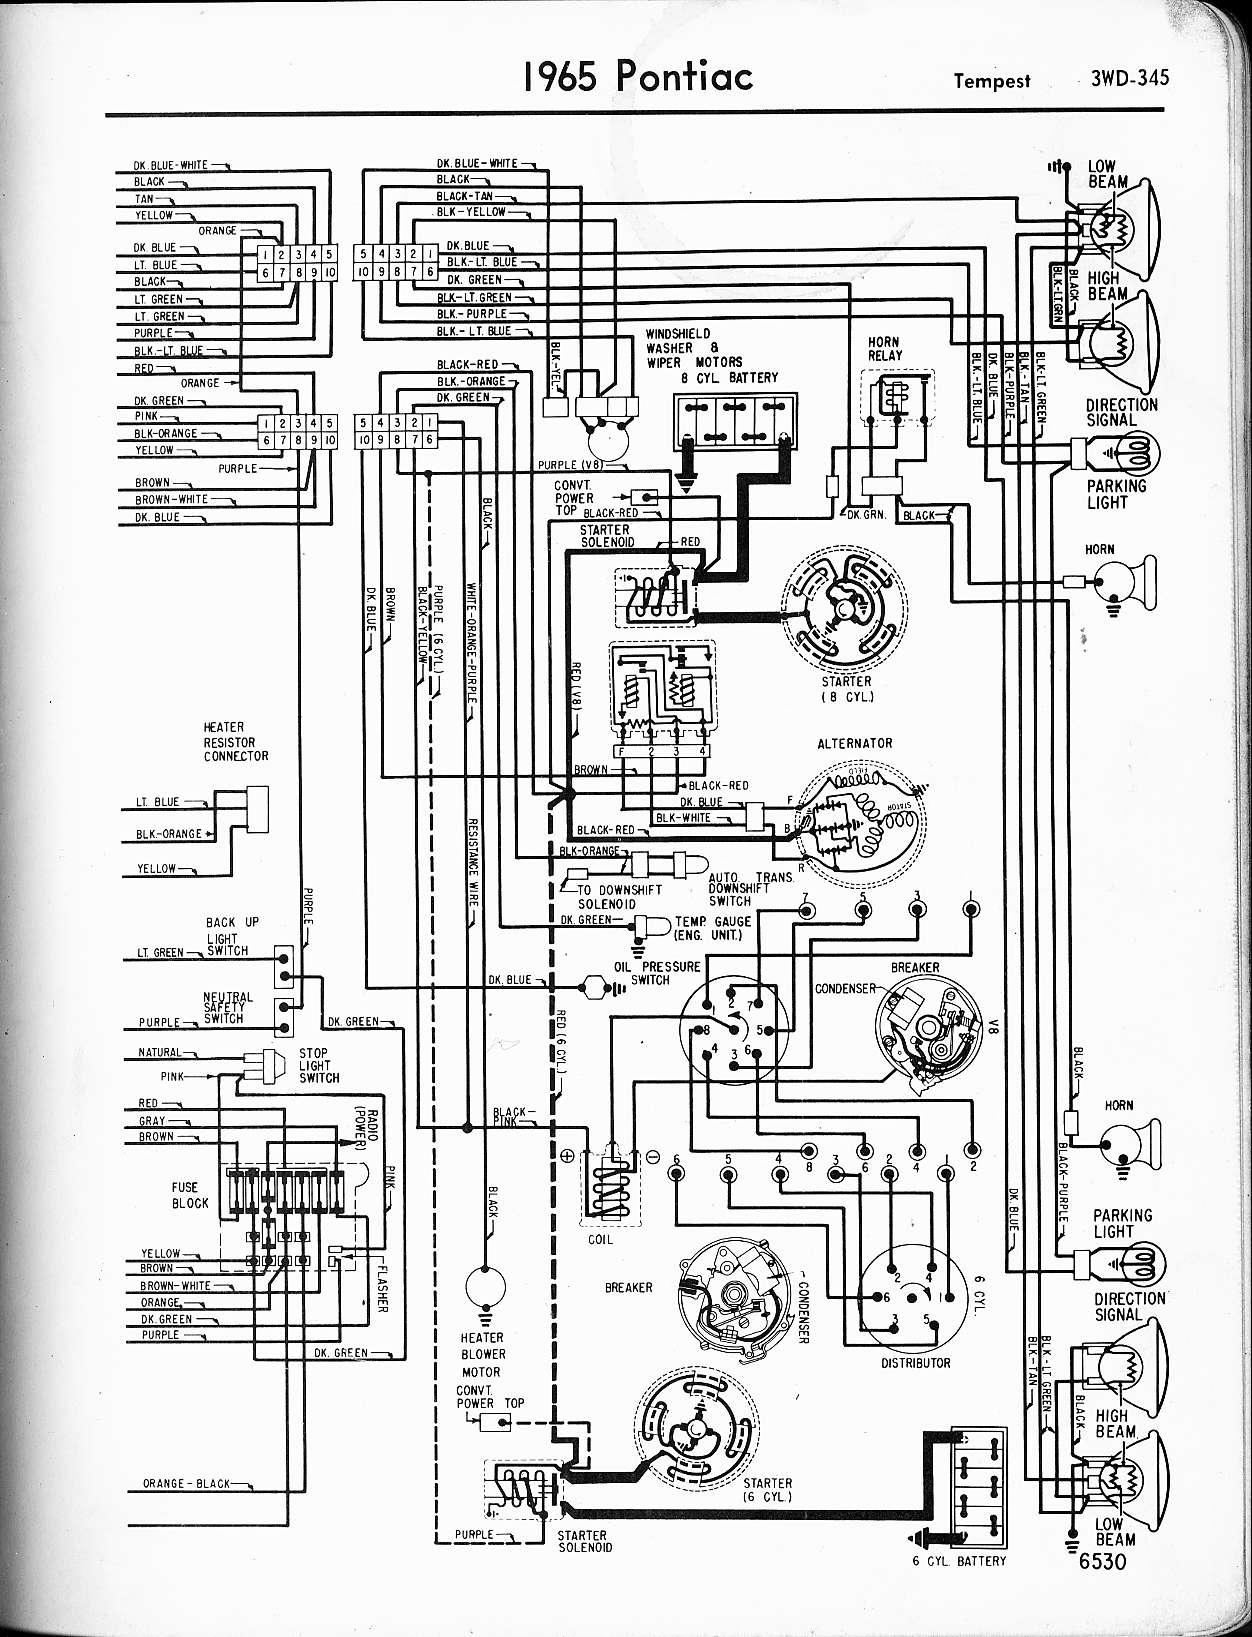 [WRG-1907] 66 Gto Engine Wiring Diagram